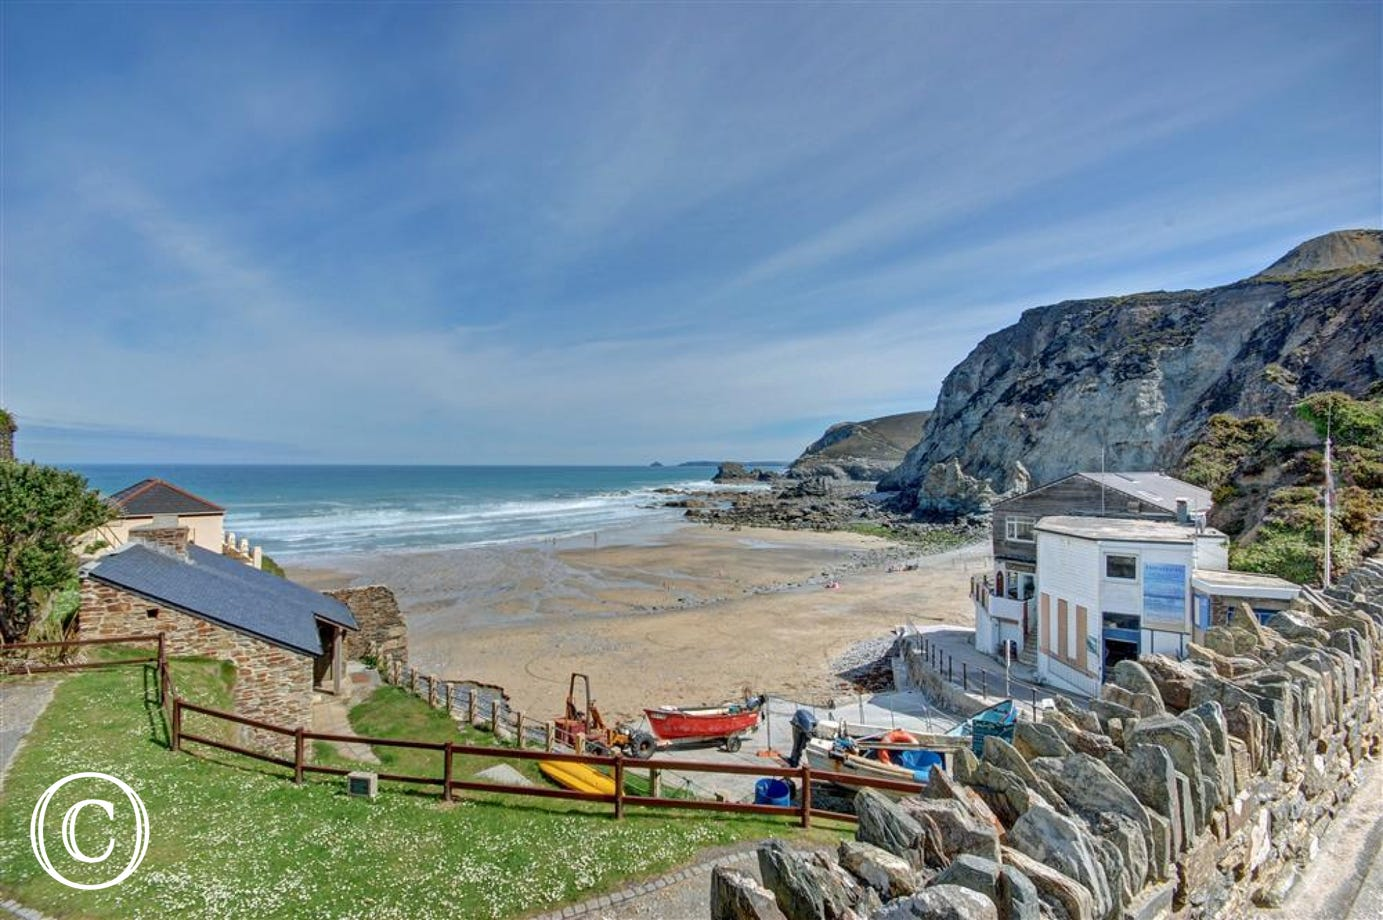 Trevaunance Cove - local beach